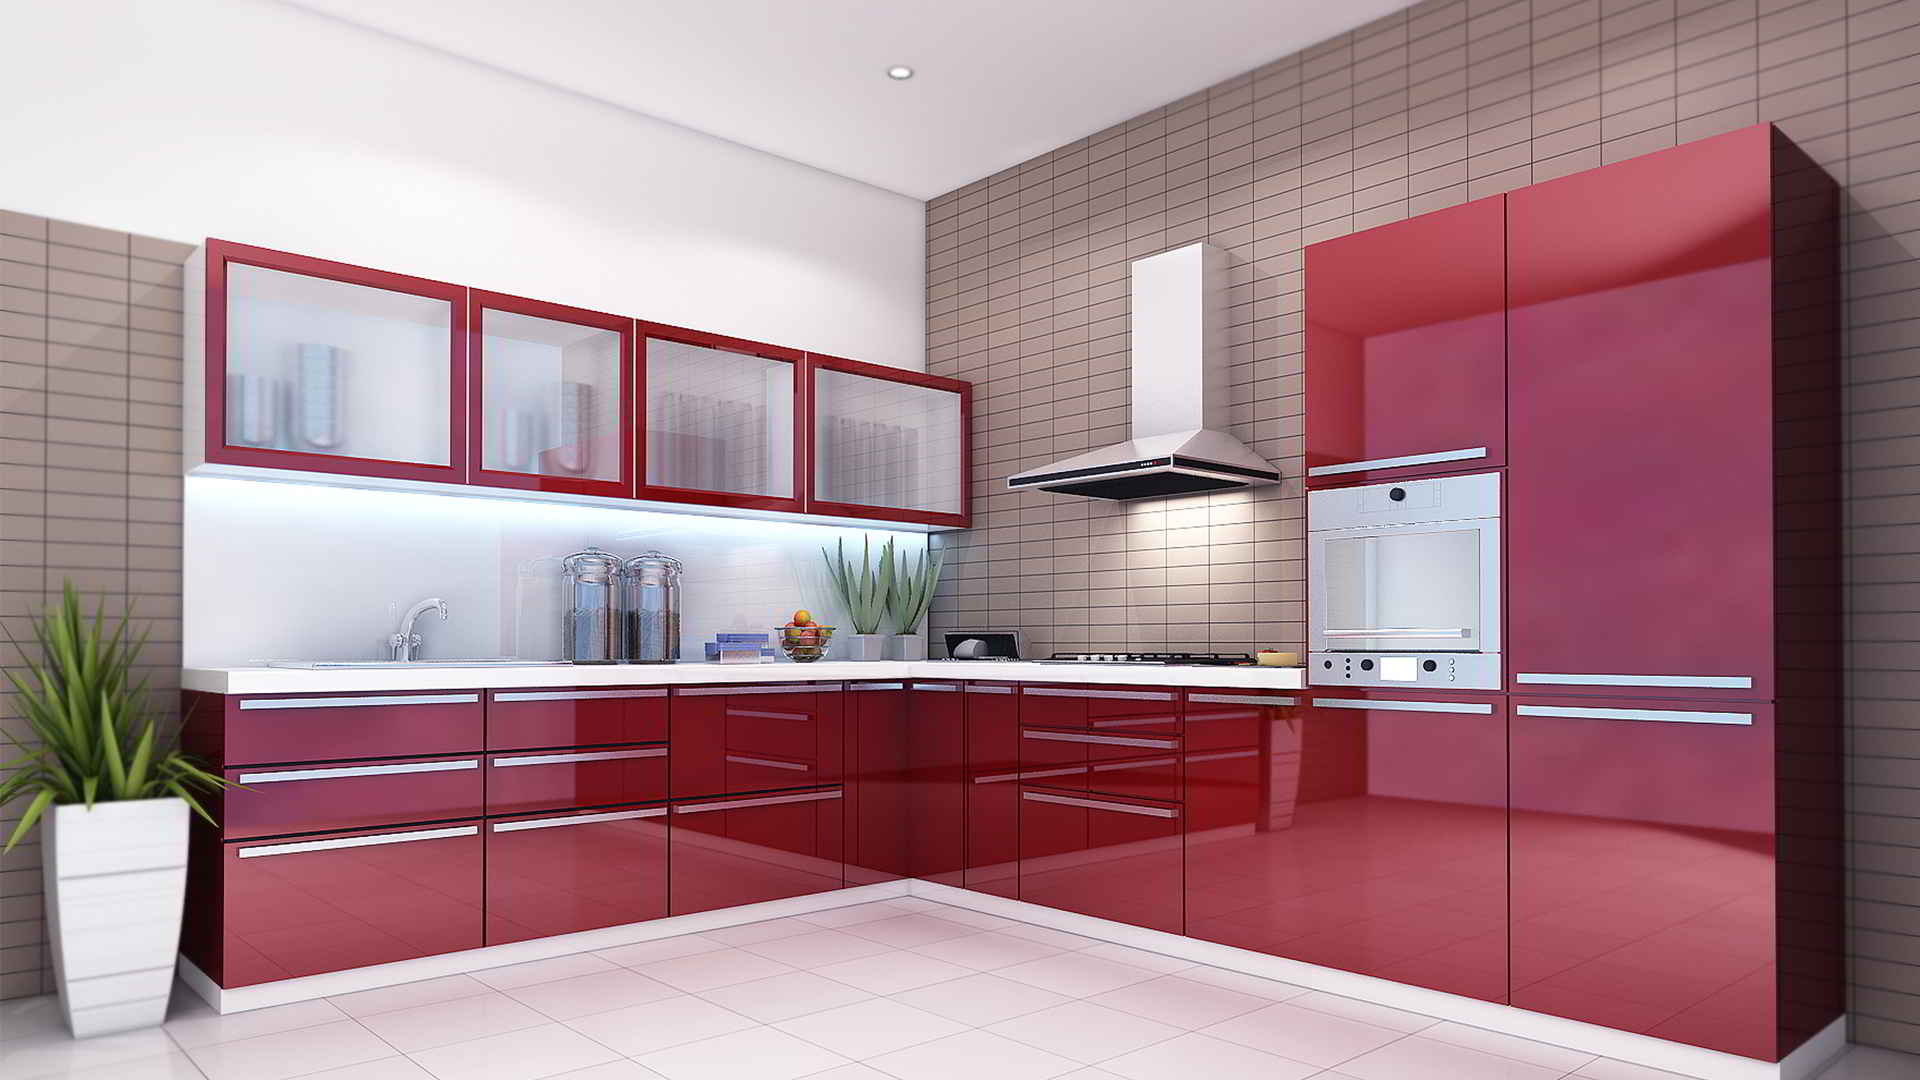 25+ Latest Design Ideas Of Modular Kitchen Pictures , Images u0026 Catalogue